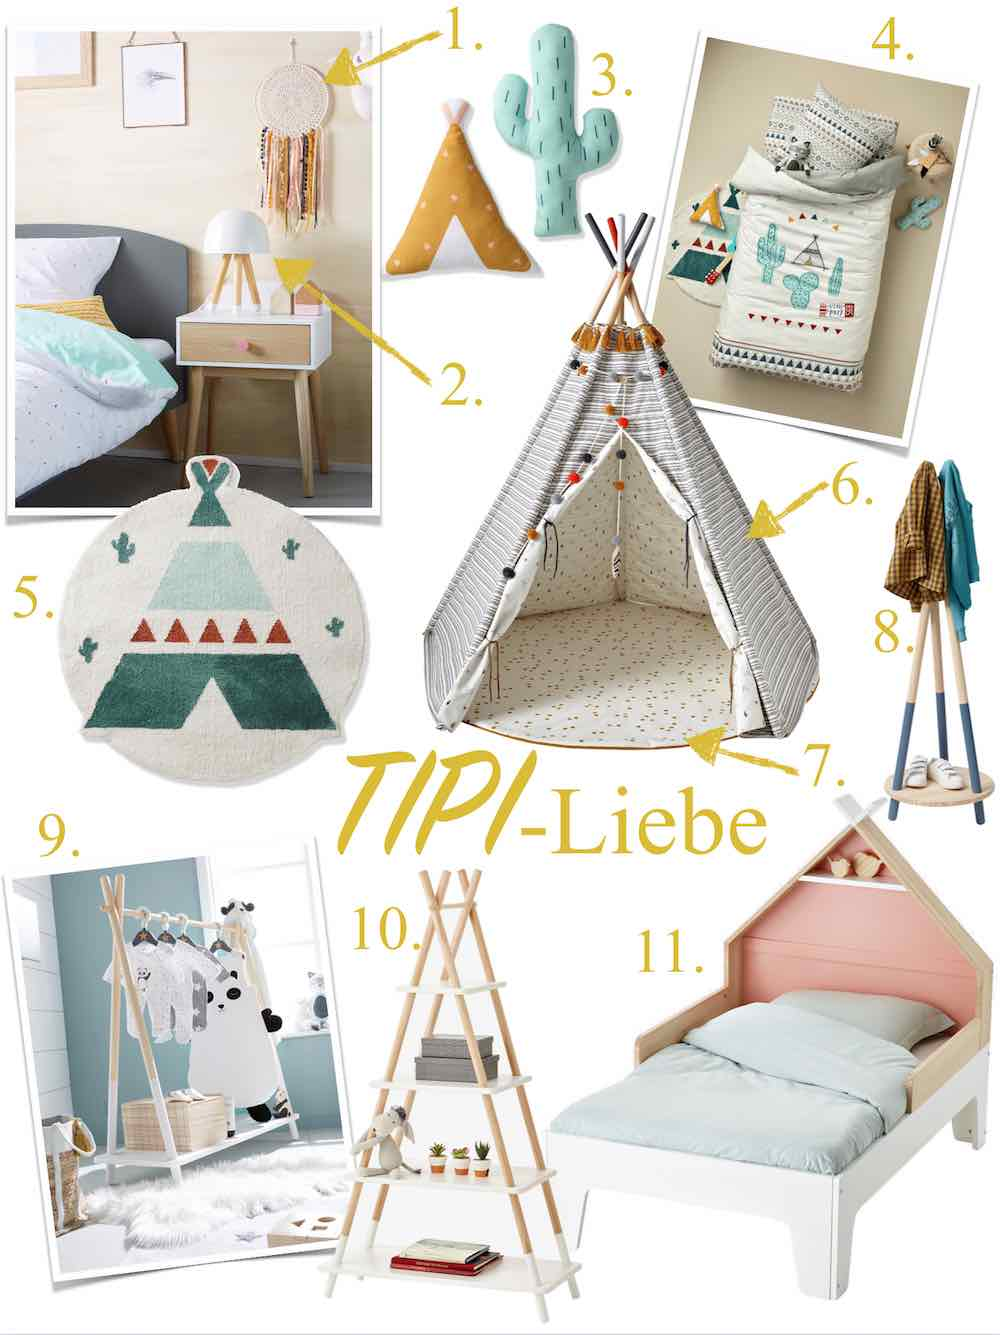 kinderzimmer ideen f r tipi fans und weitere favoriten von. Black Bedroom Furniture Sets. Home Design Ideas